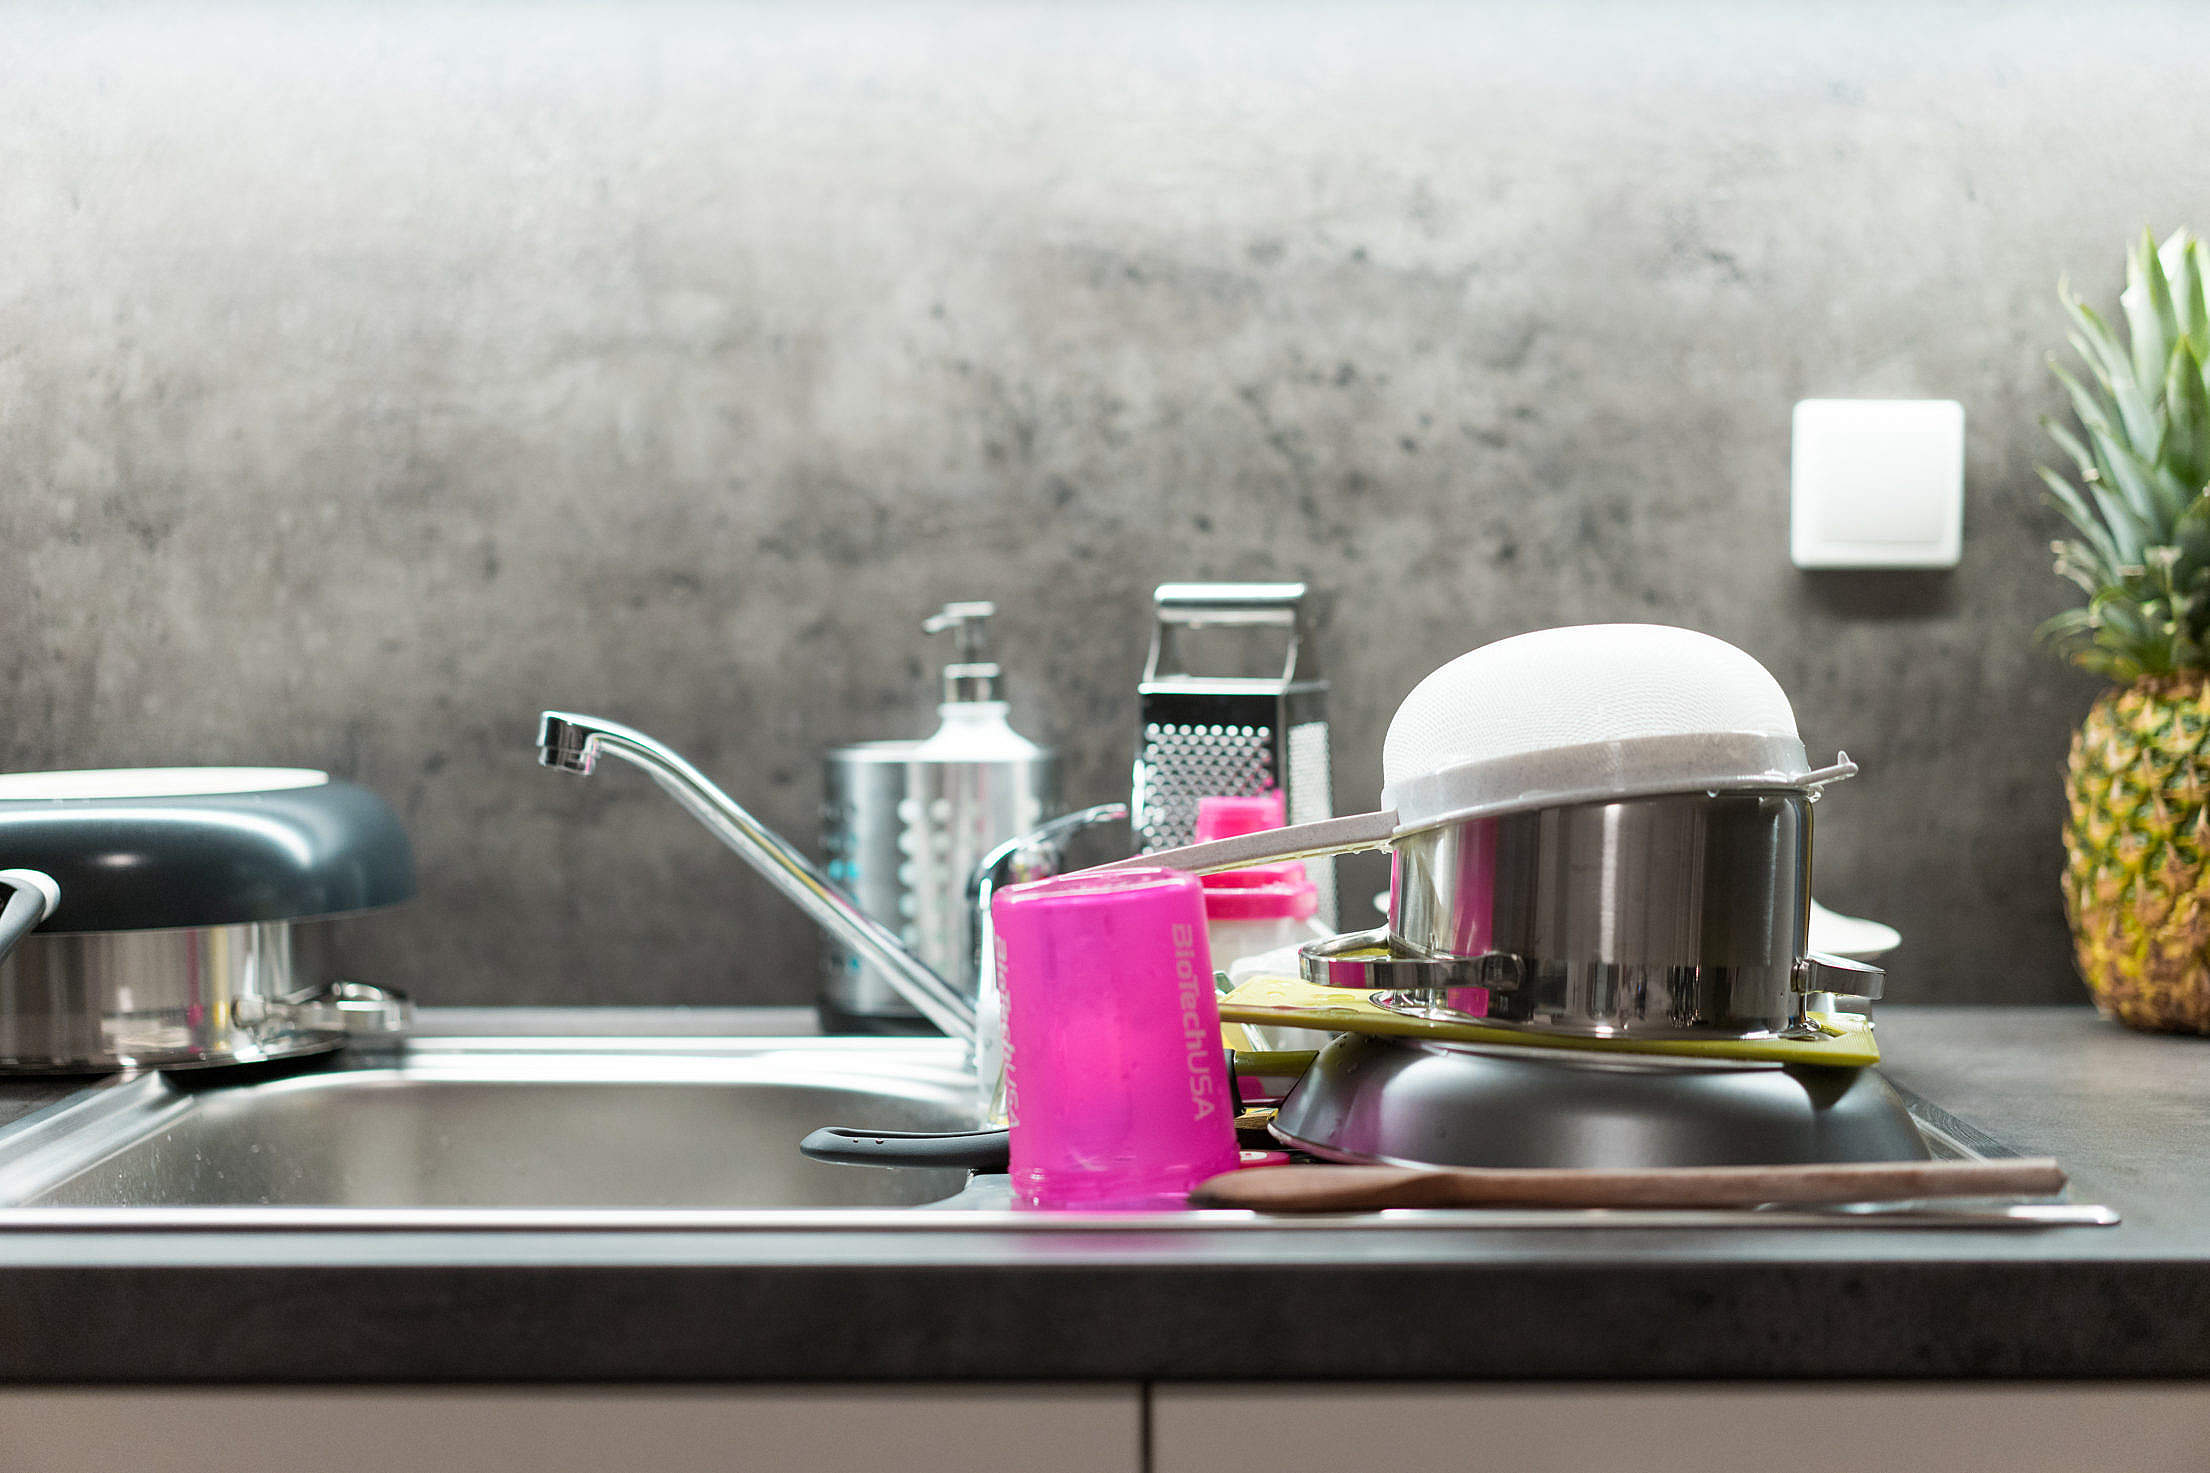 Washed Dishes Mess in the Kitchen Free Stock Photo